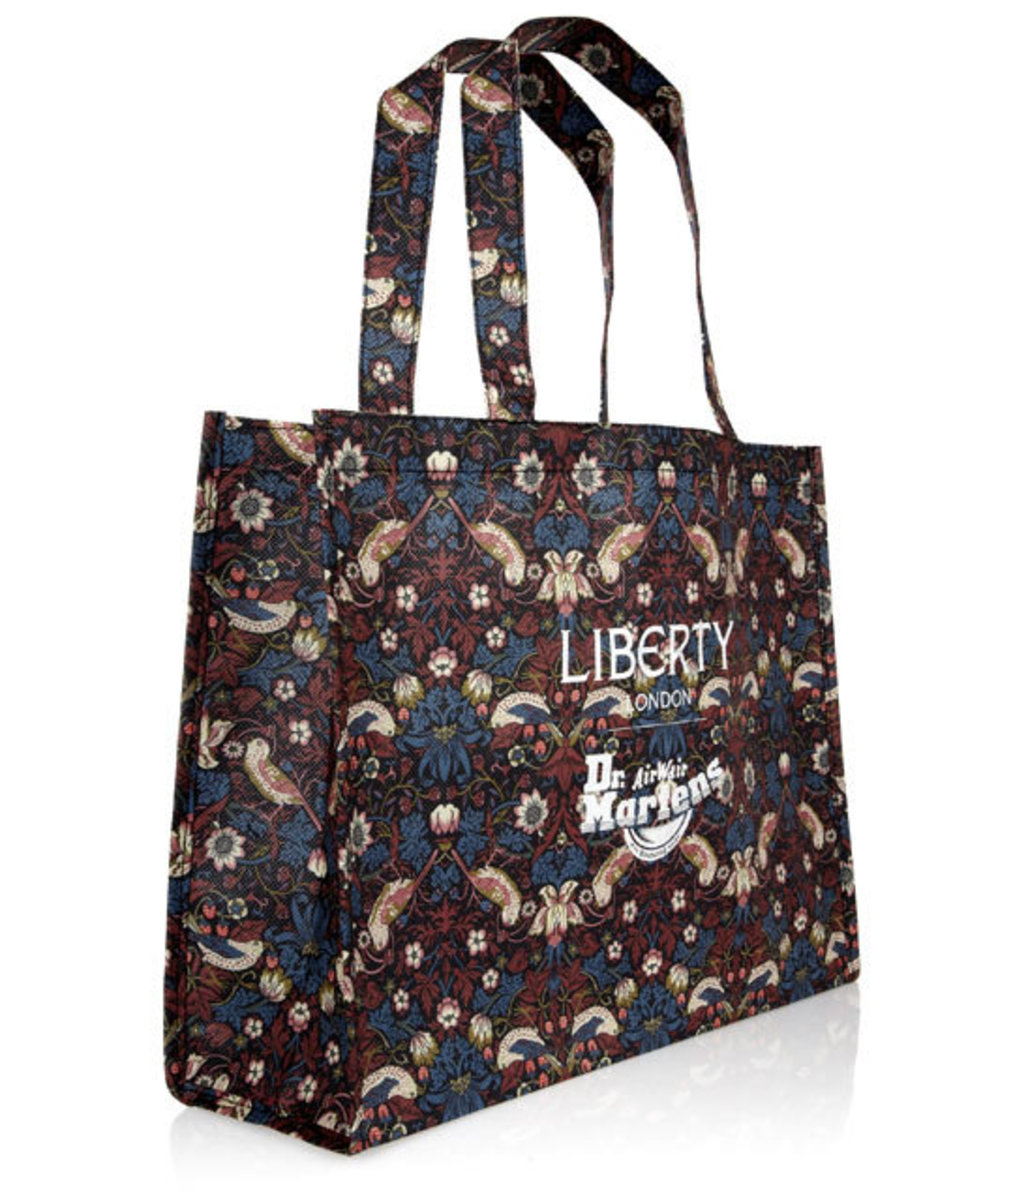 liberty-dr-martens-wild-nature-collection-13